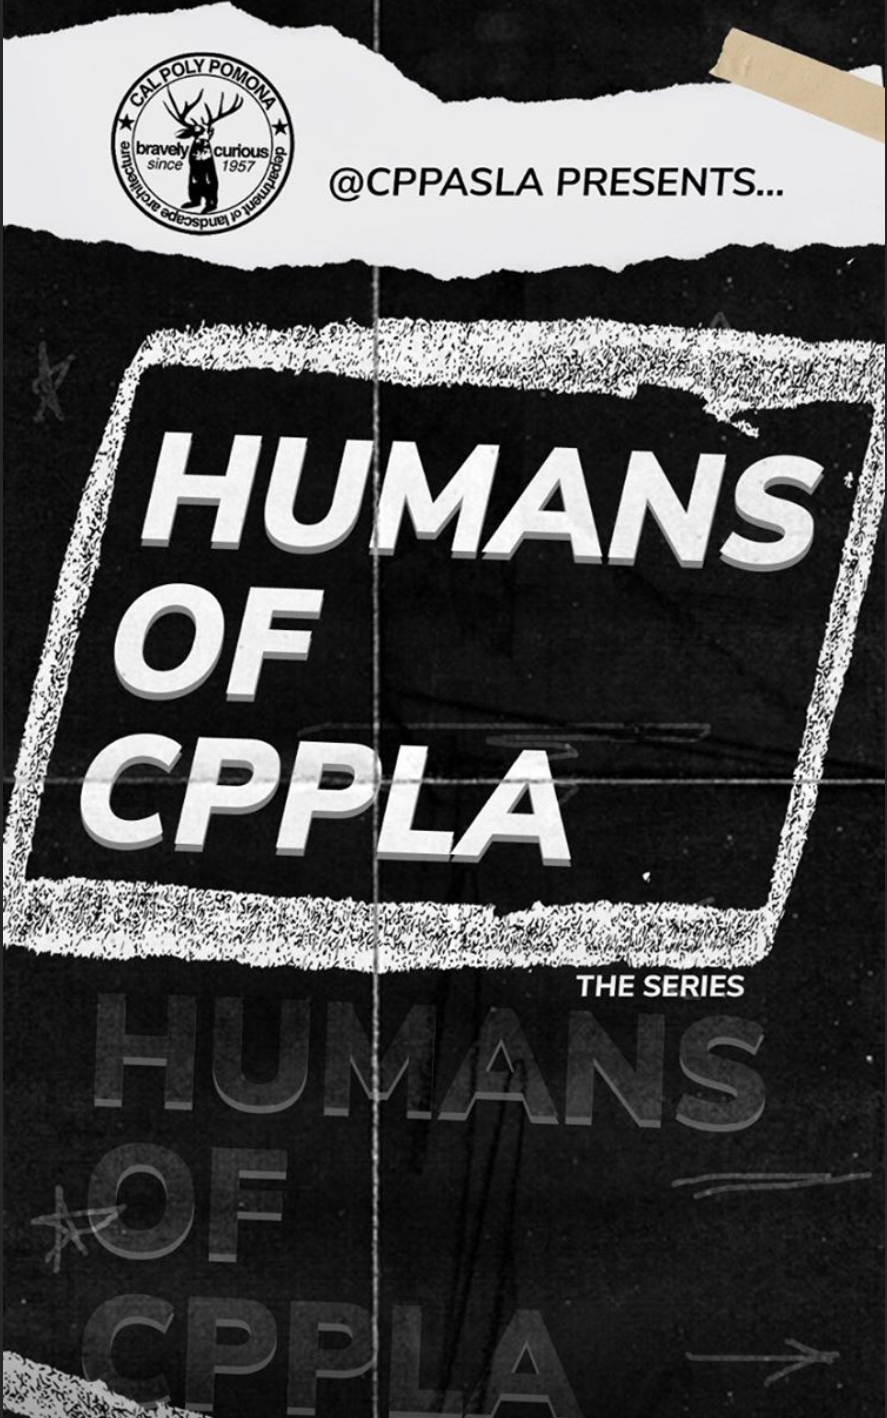 humans of cppla series by cpp asla instagram stories